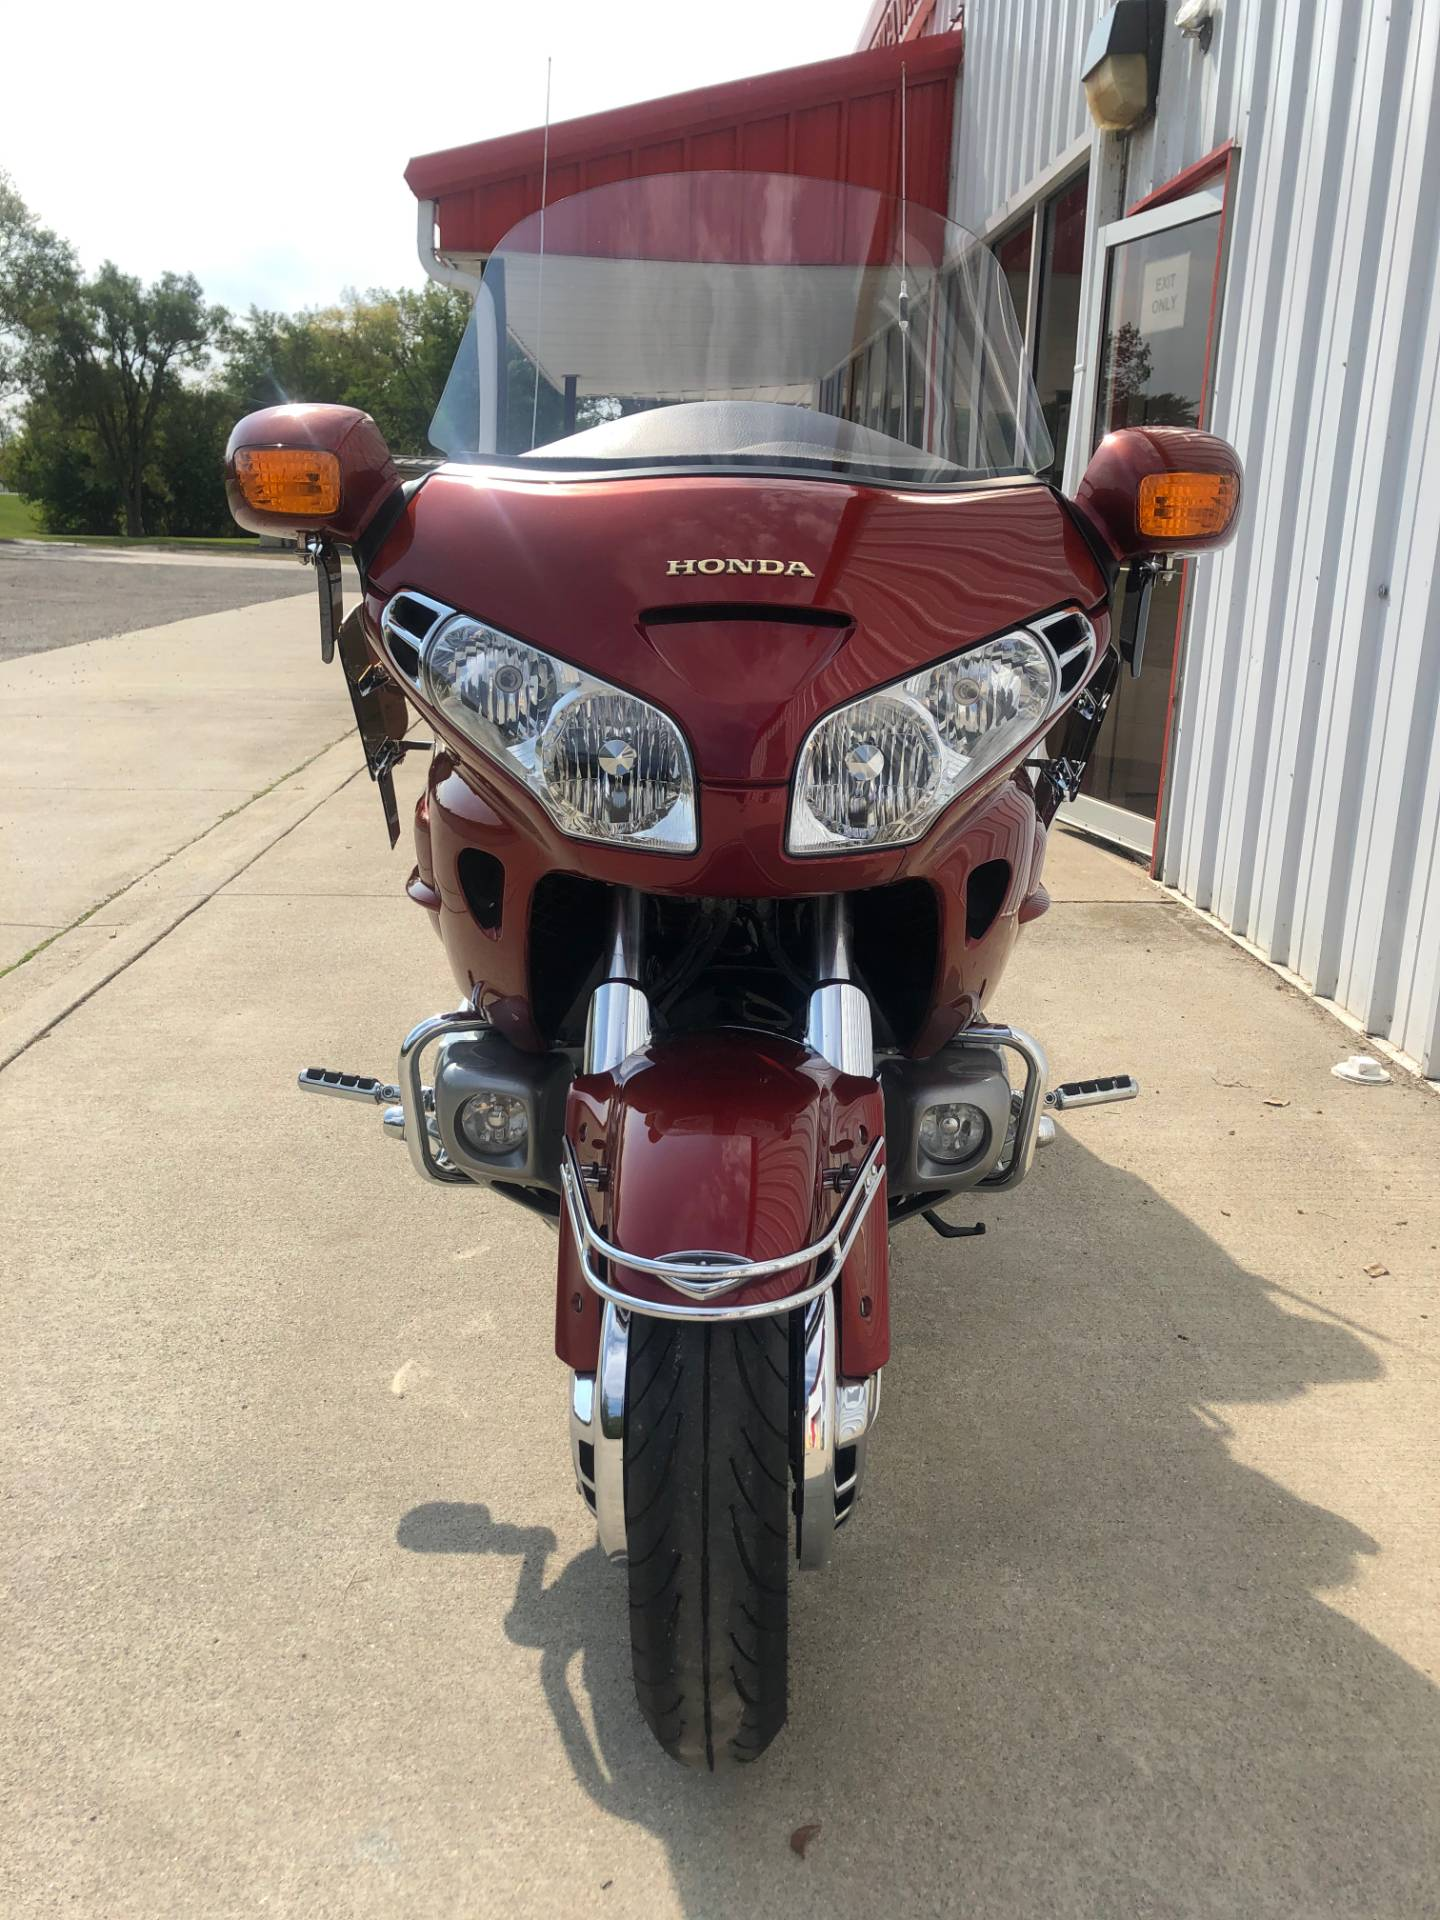 2001 Honda Gold Wing in Ottawa, Ohio - Photo 3